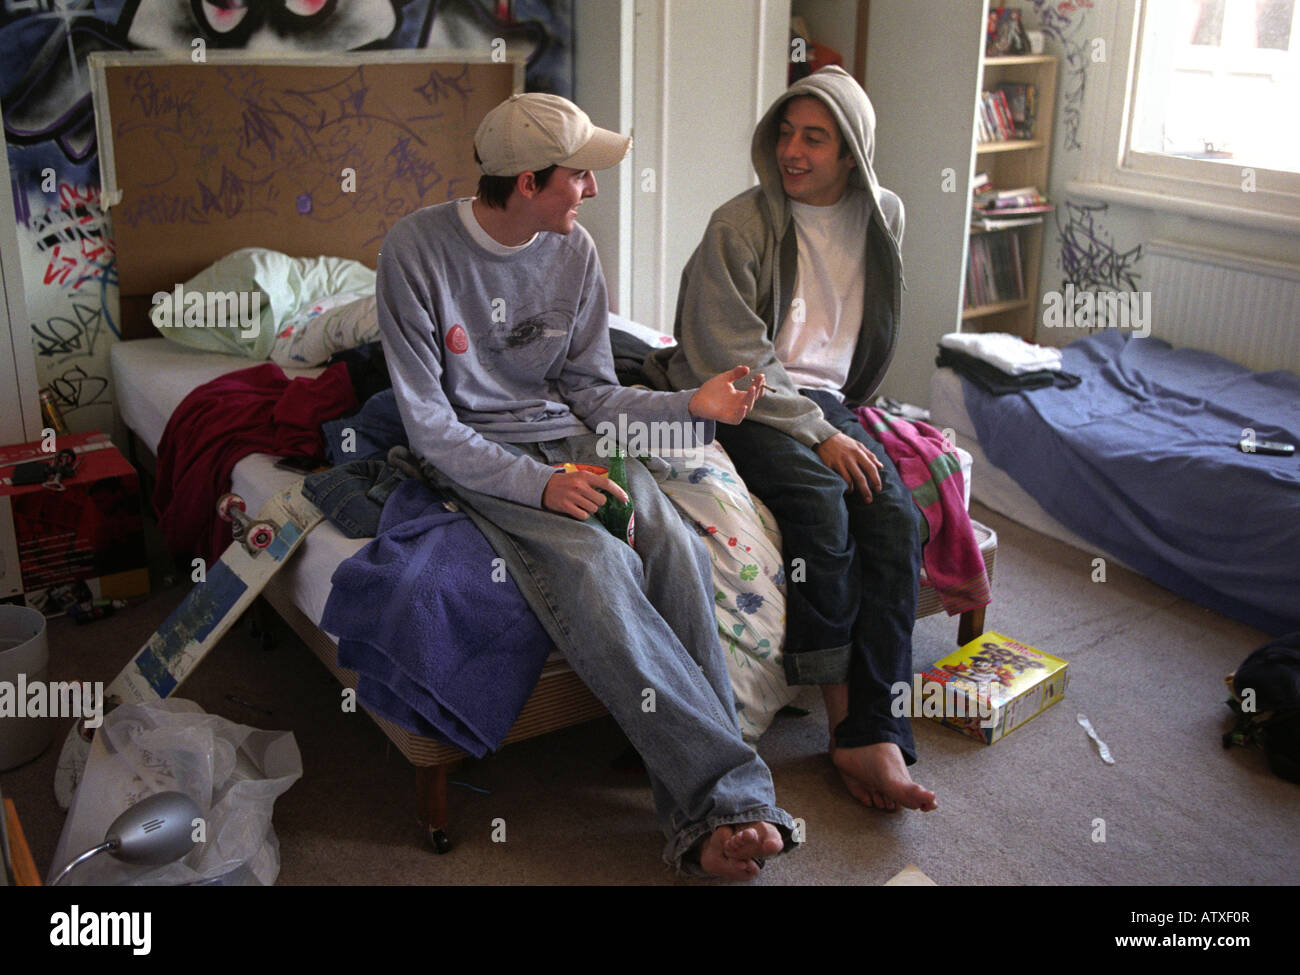 Two teenage friends smoking drinking and chatting in bedroom. Stock Photo